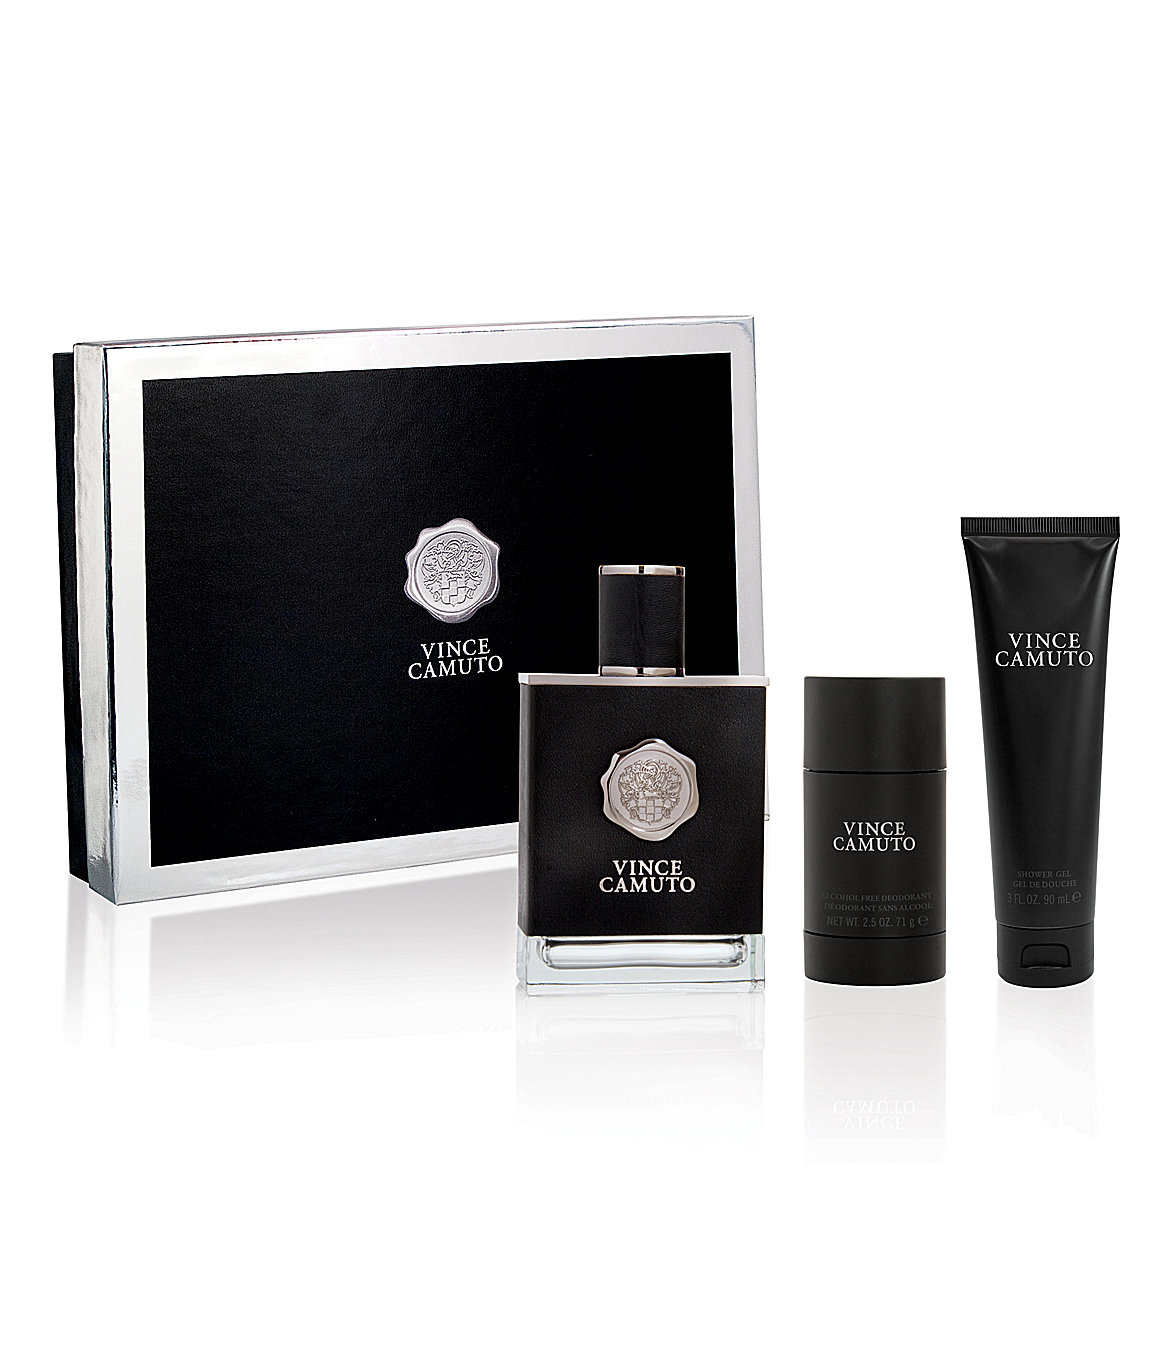 Vince Camuto by Vince Camuto 3 Pc Gift Set for men